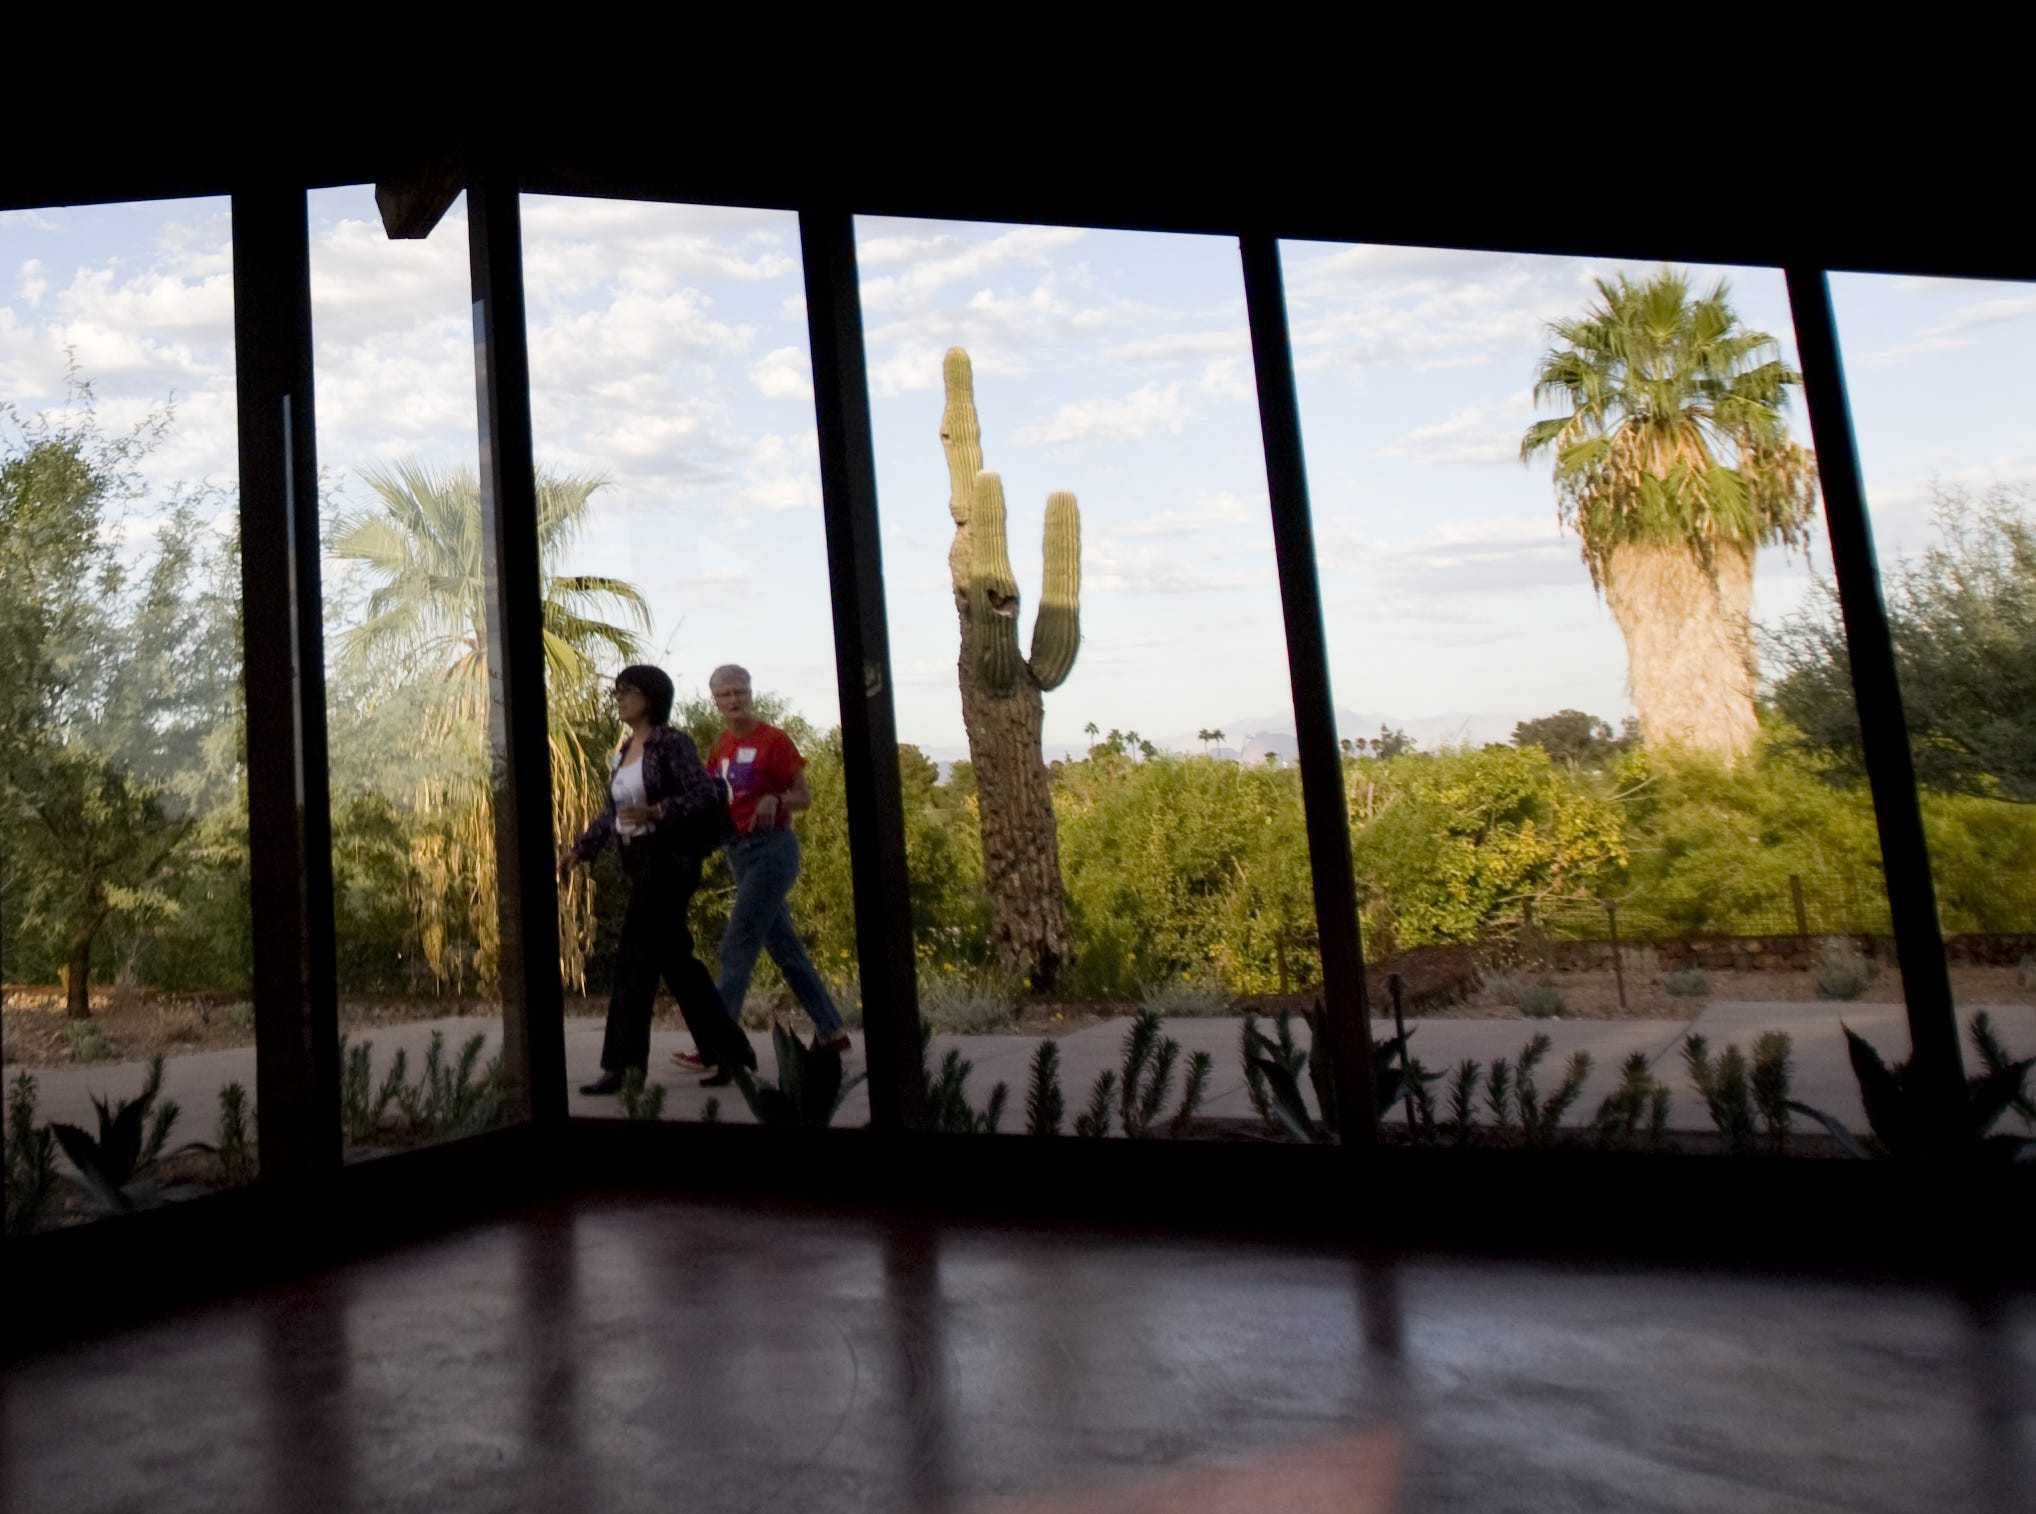 Guests admire Sandra Day O'Connor's house at Papago Park on Oct. 18, 2009.  Her family owned the adobe structure in Paradise Valley and conservationist moved the house to Tempe as an exhibit at the Arizona Historical Museum.